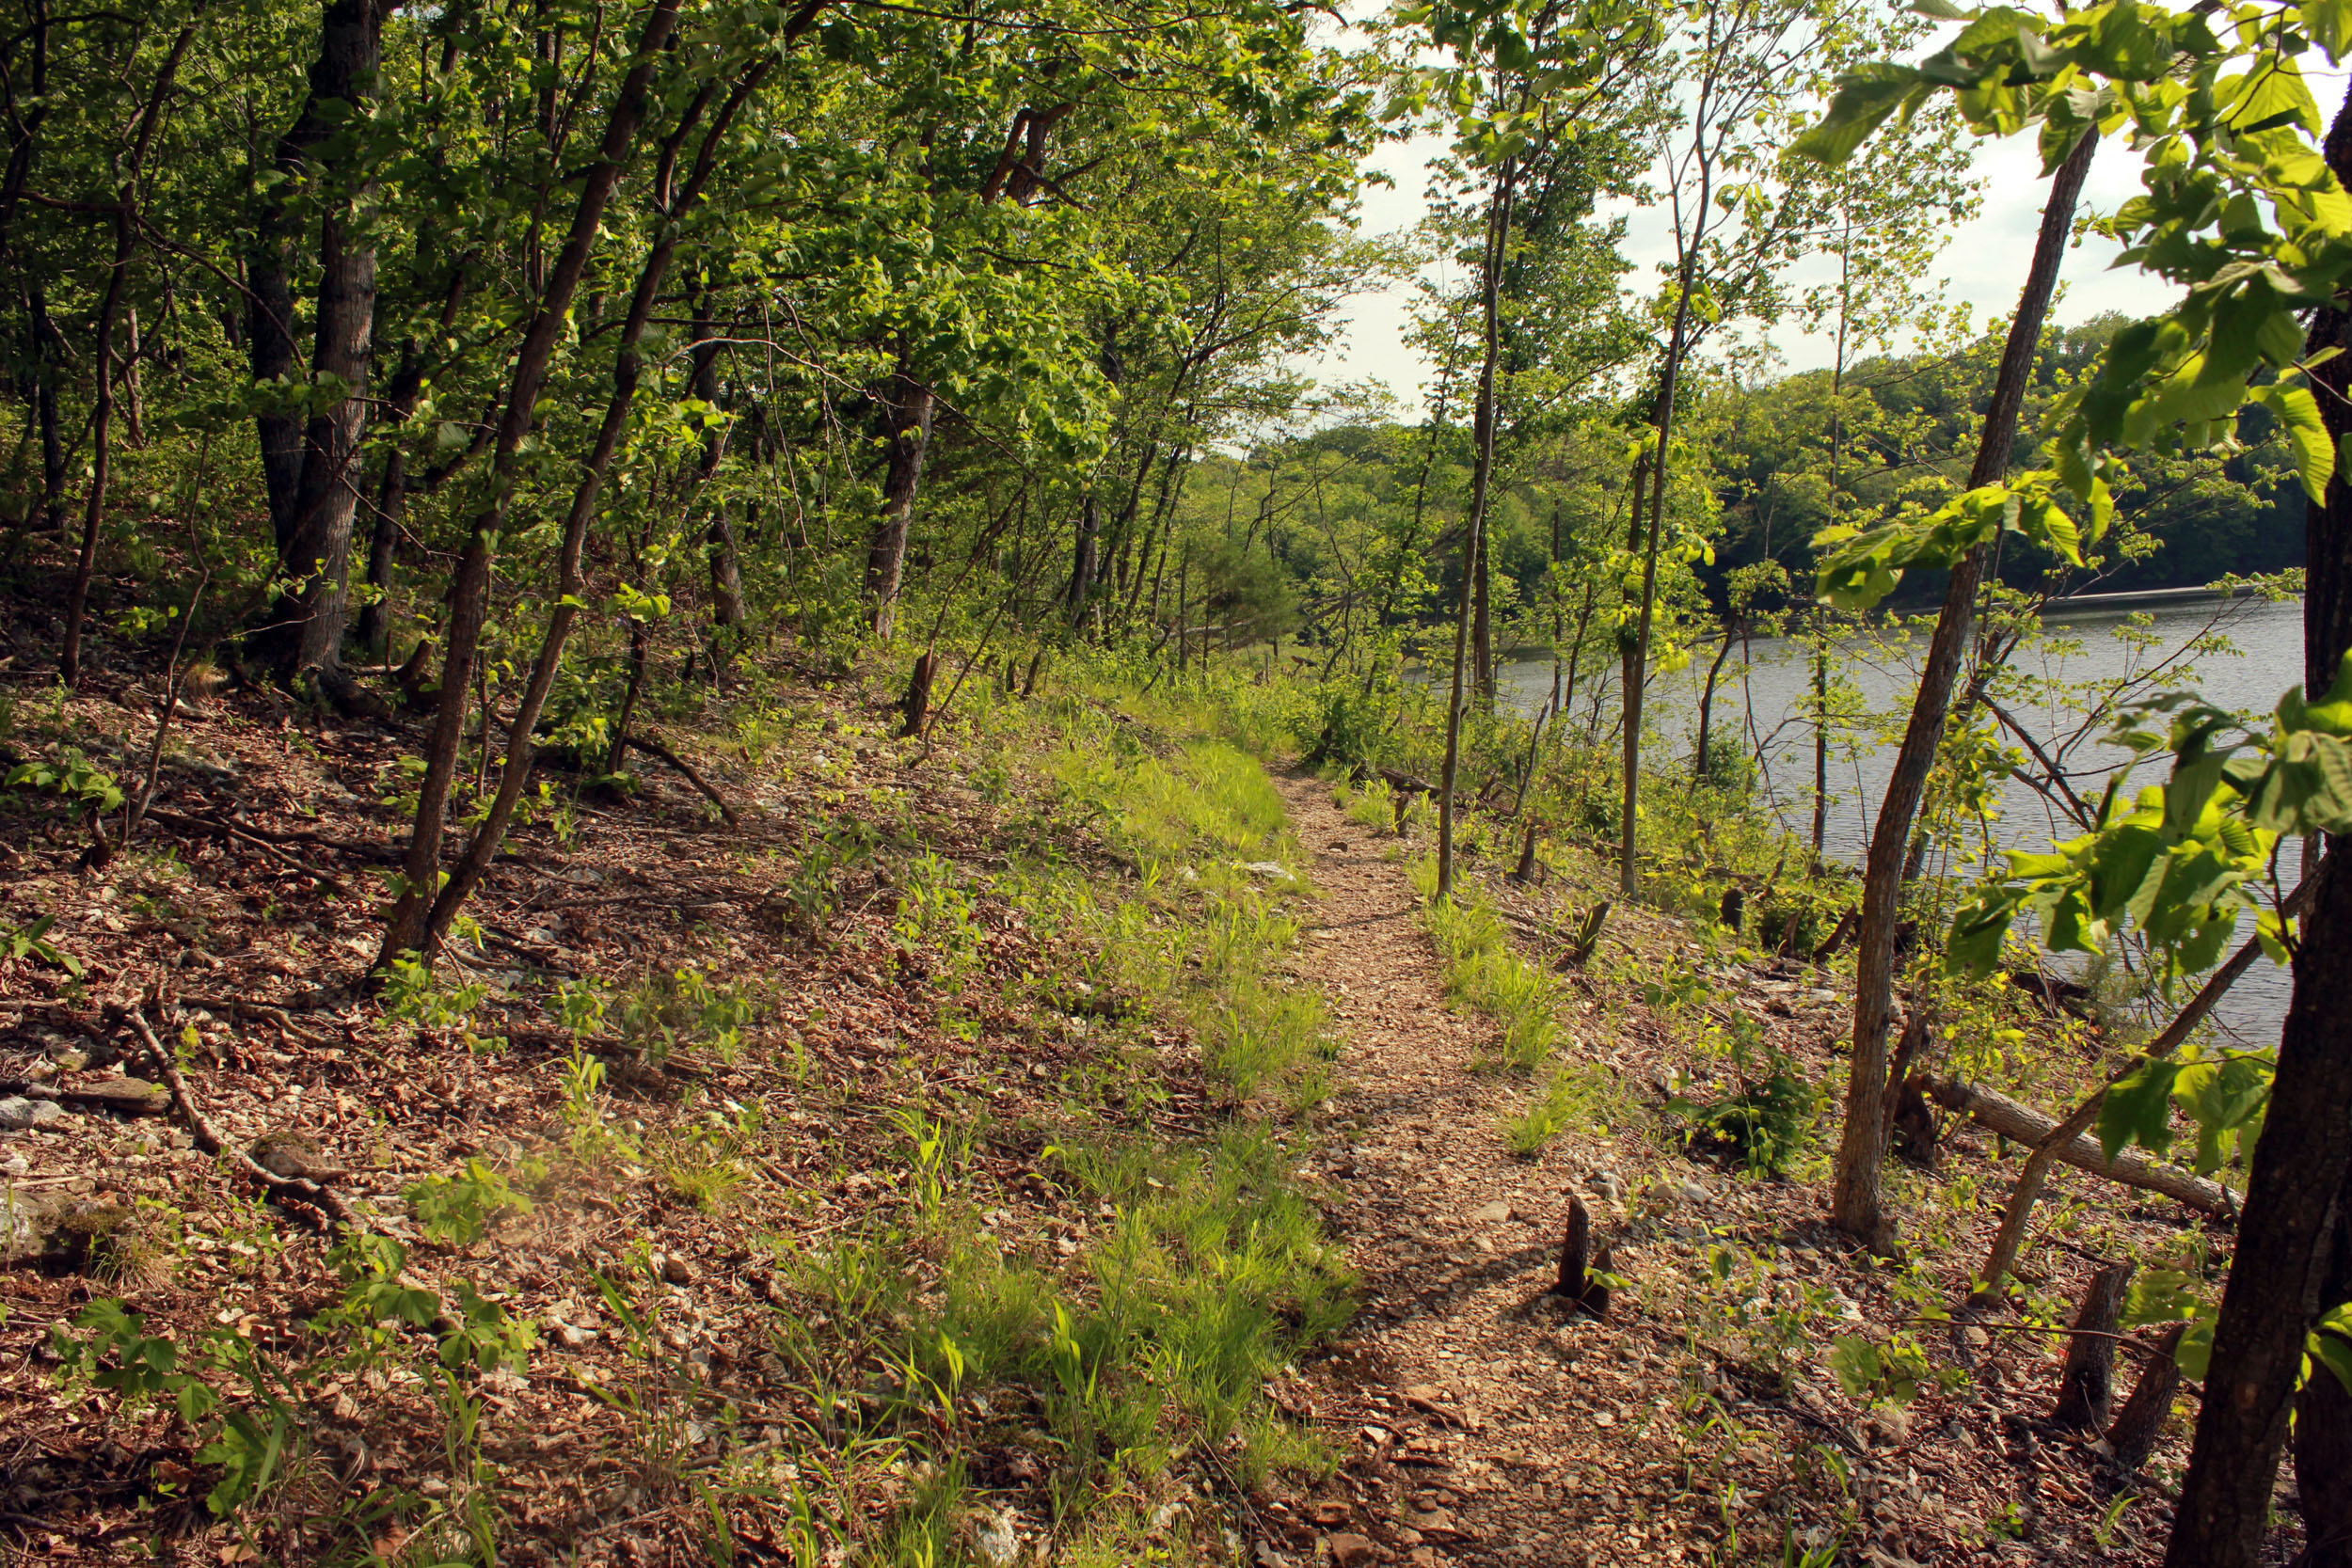 Trail by the lake at Cuivre River State Park, Missouri.